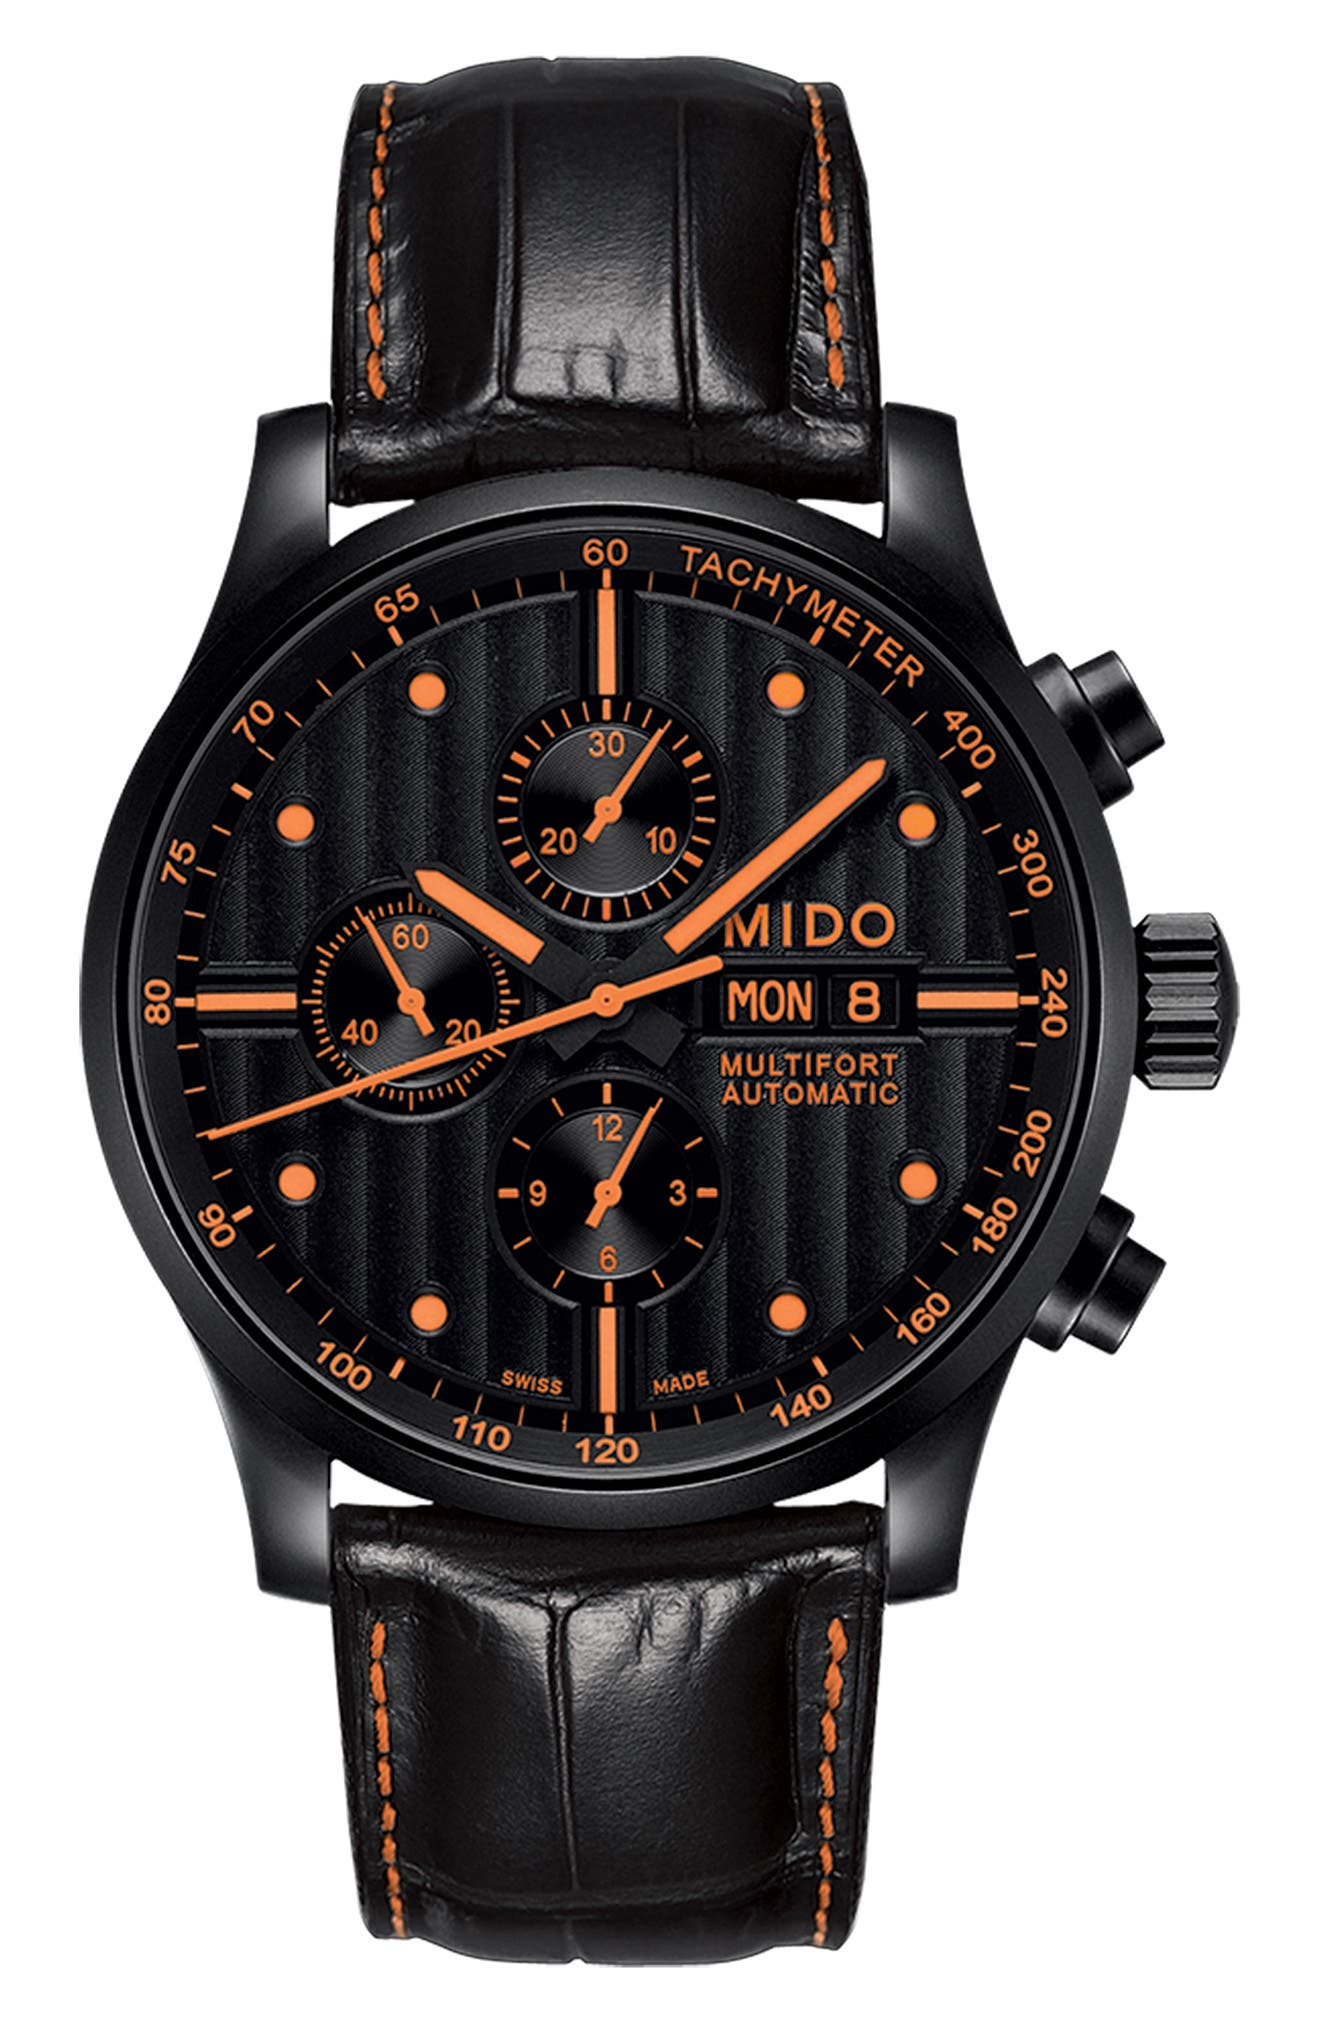 MIDO Multifort Automatic Chronograph Leather Strap Watch, 44mm